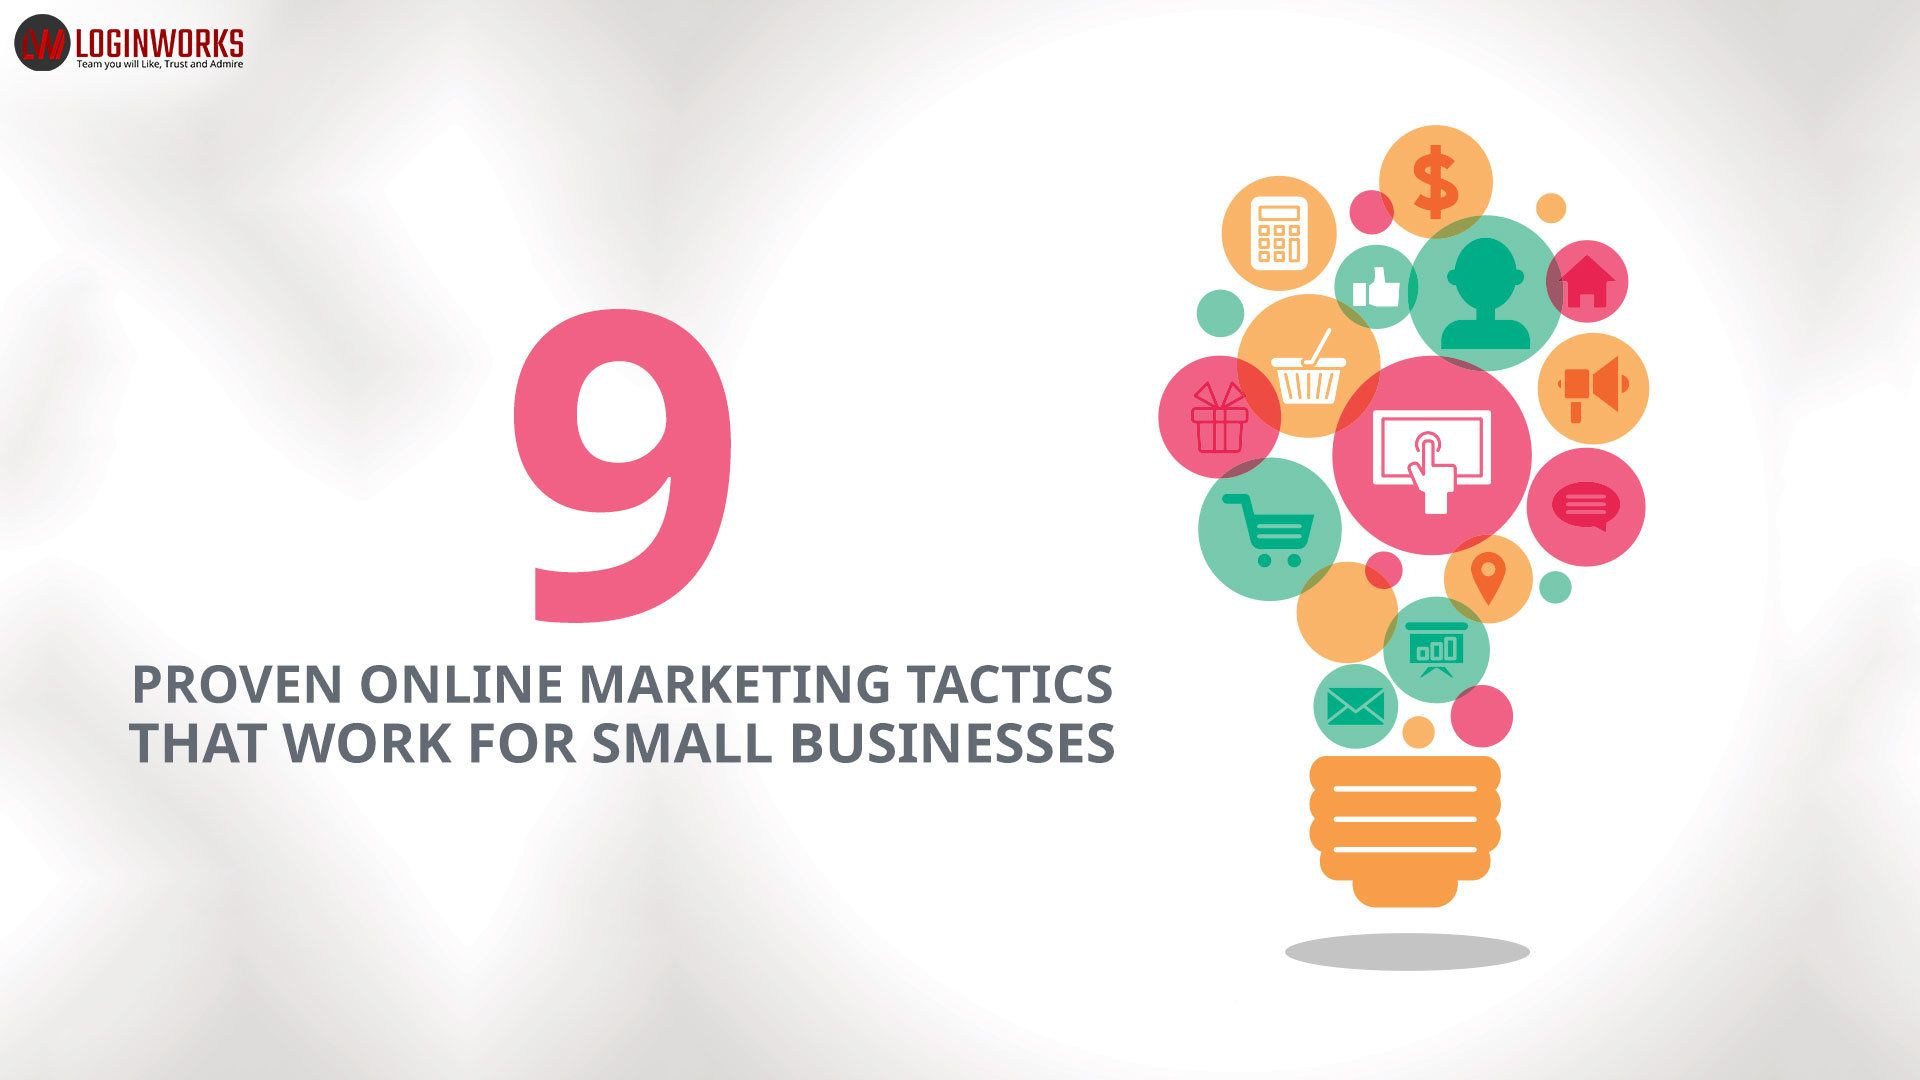 9 PROVEN ONLINE MARKETING TACTICS THAT WORK FOR SMALL BUSINESSES